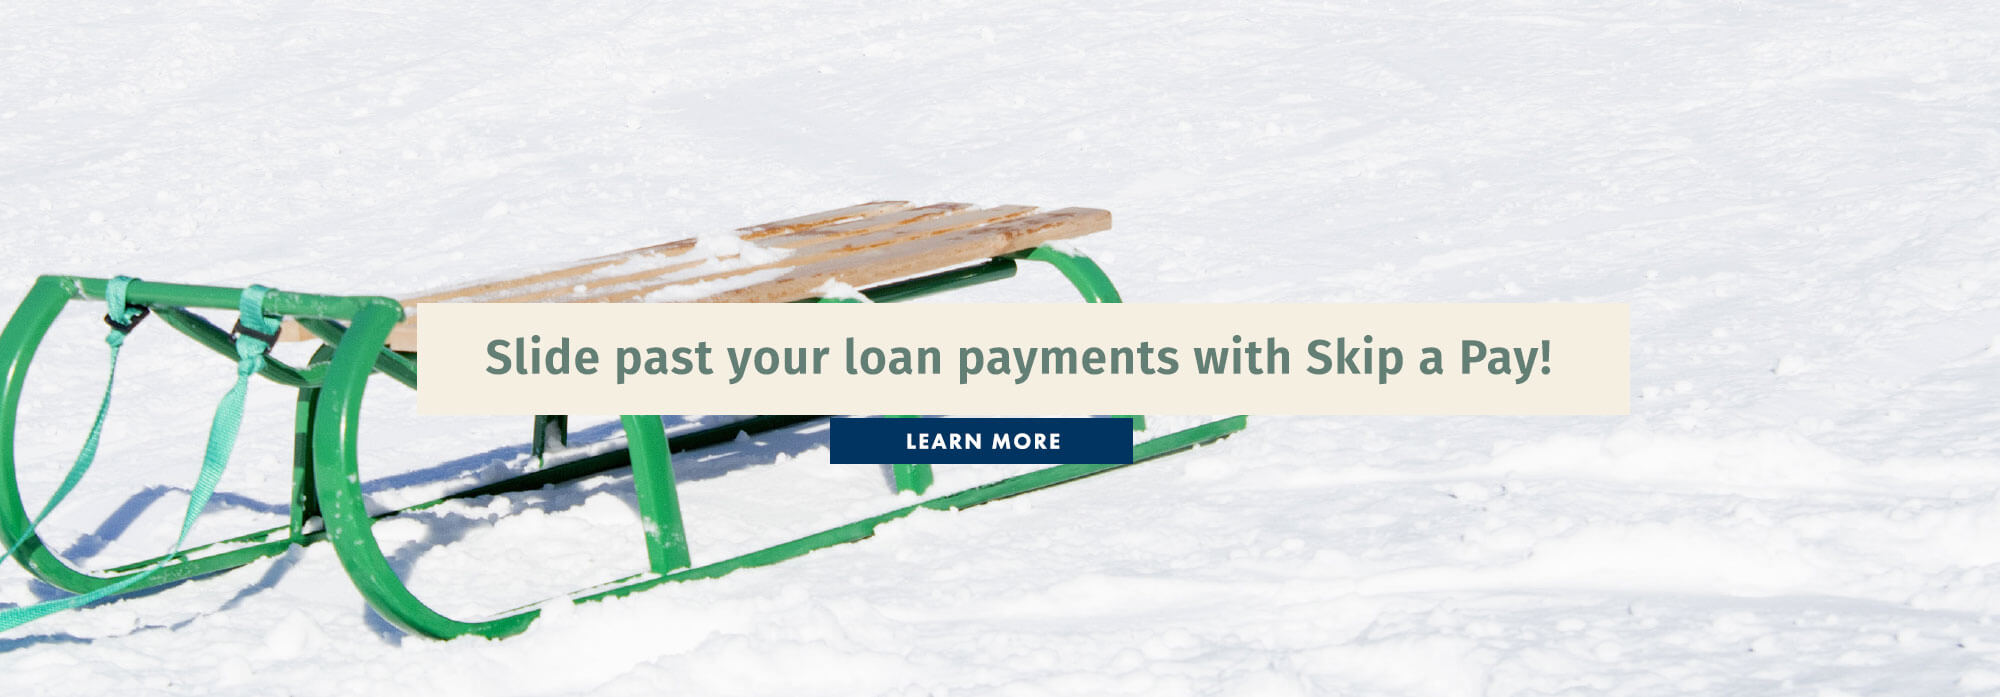 Slide past your loan payments with Skip a Pay!